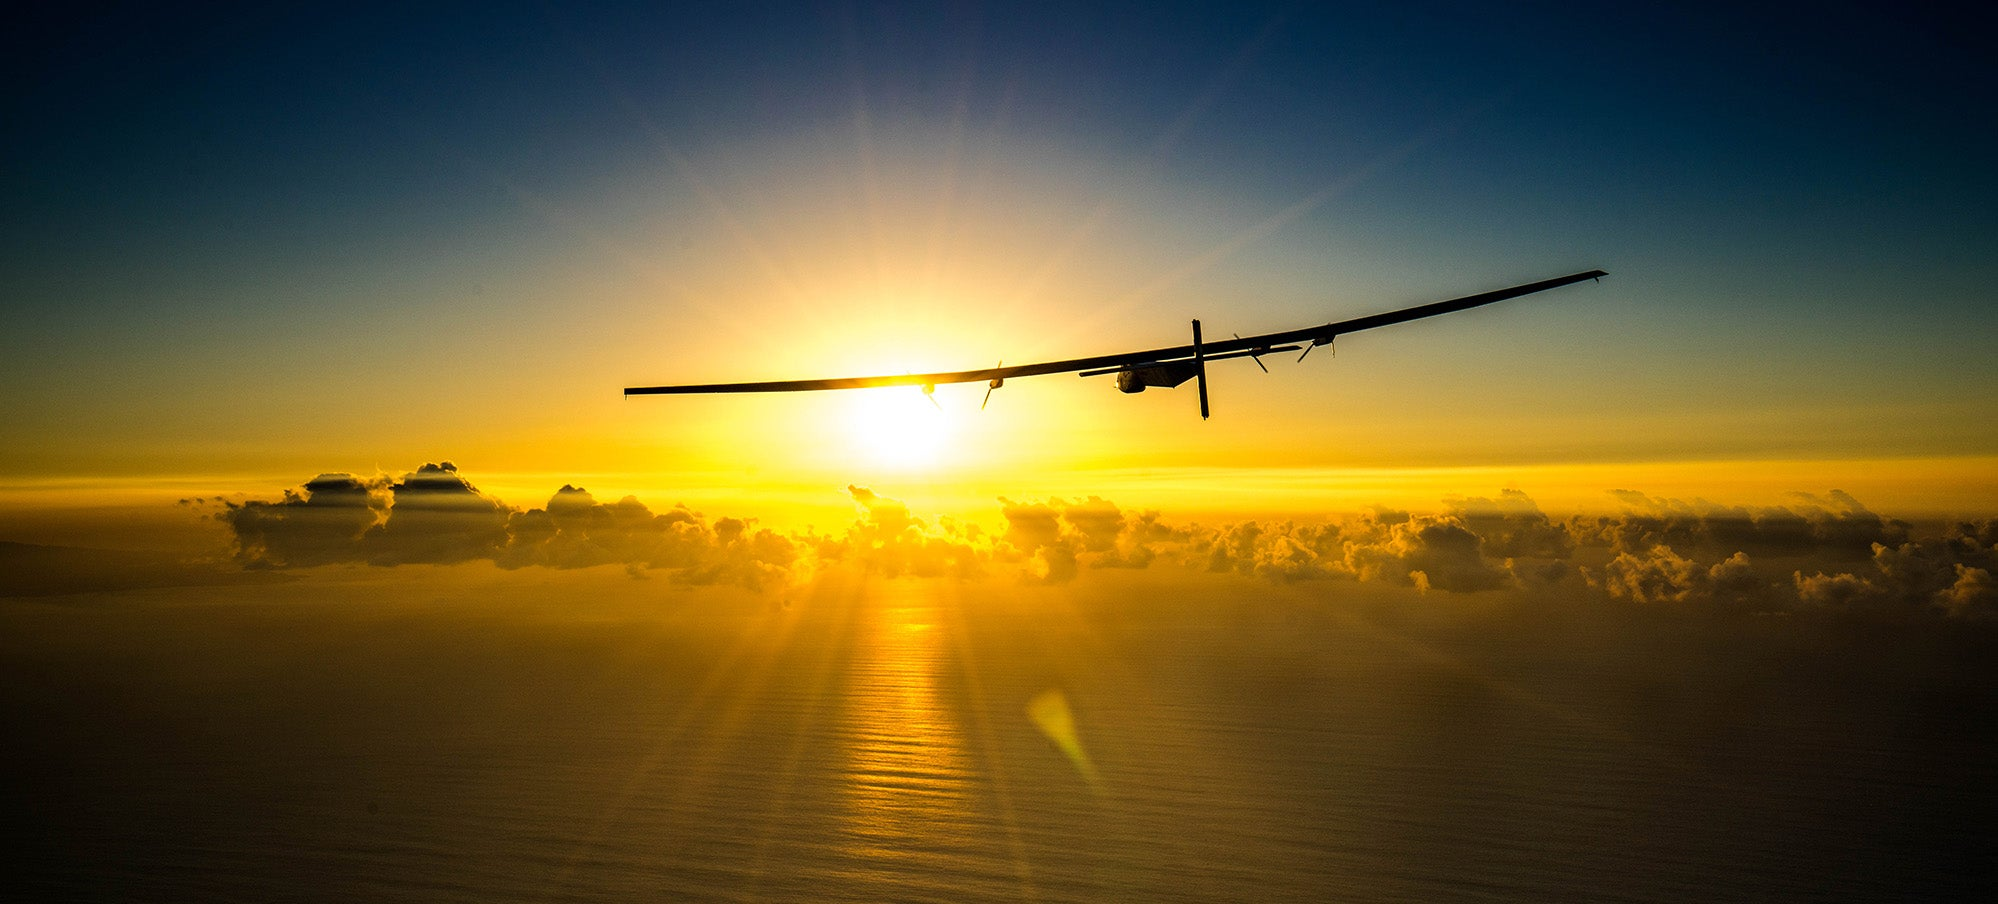 Solar-Powered Aeroplane Solar Impulse 2 to Continue Round-the-World Flight